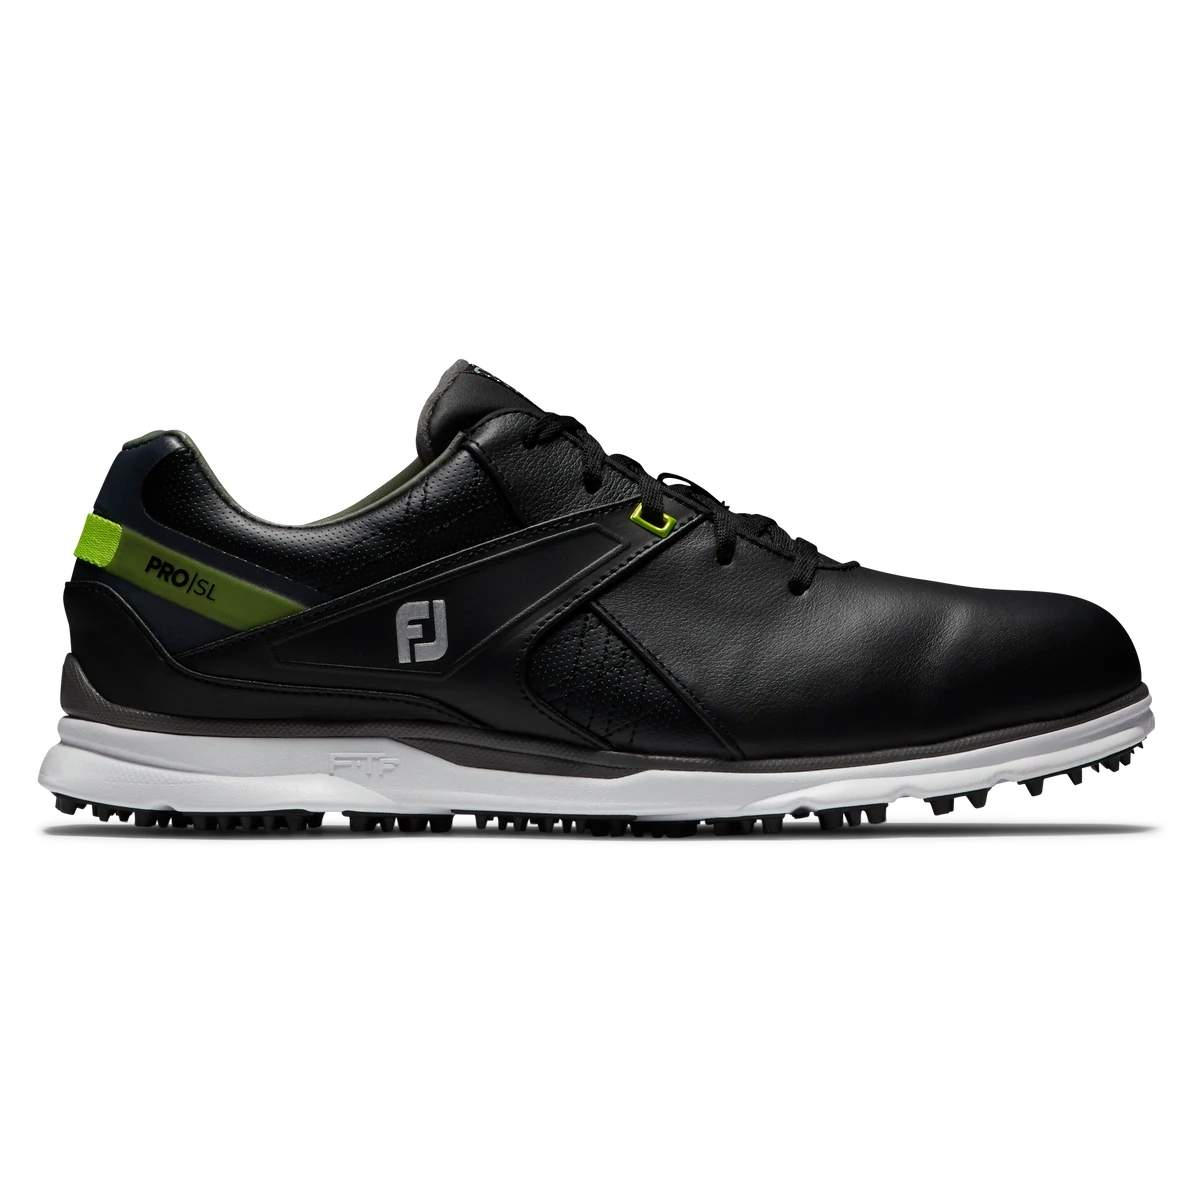 FootJoy Men's Pro|SL Black Golf Shoe - Style 53813